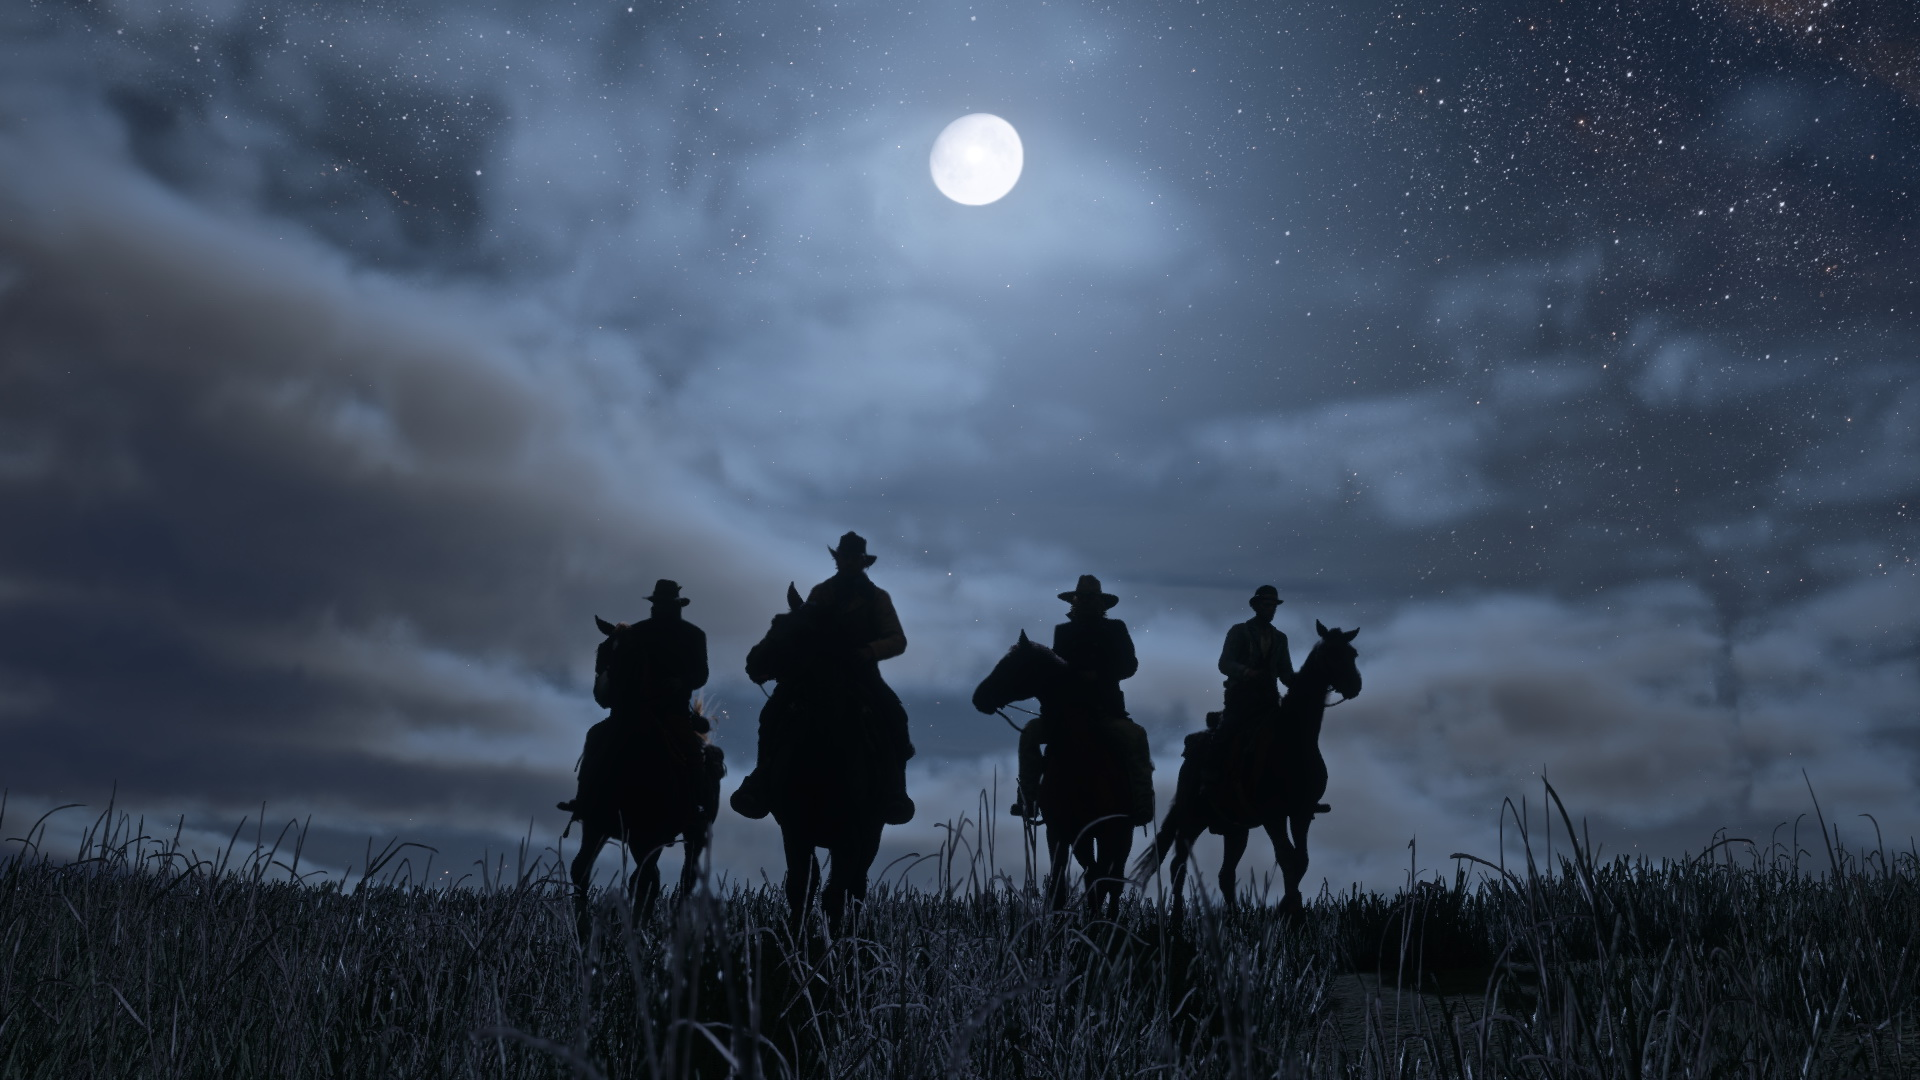 Red Dead Redemption 2 might take up more than 100GB of space screenshot